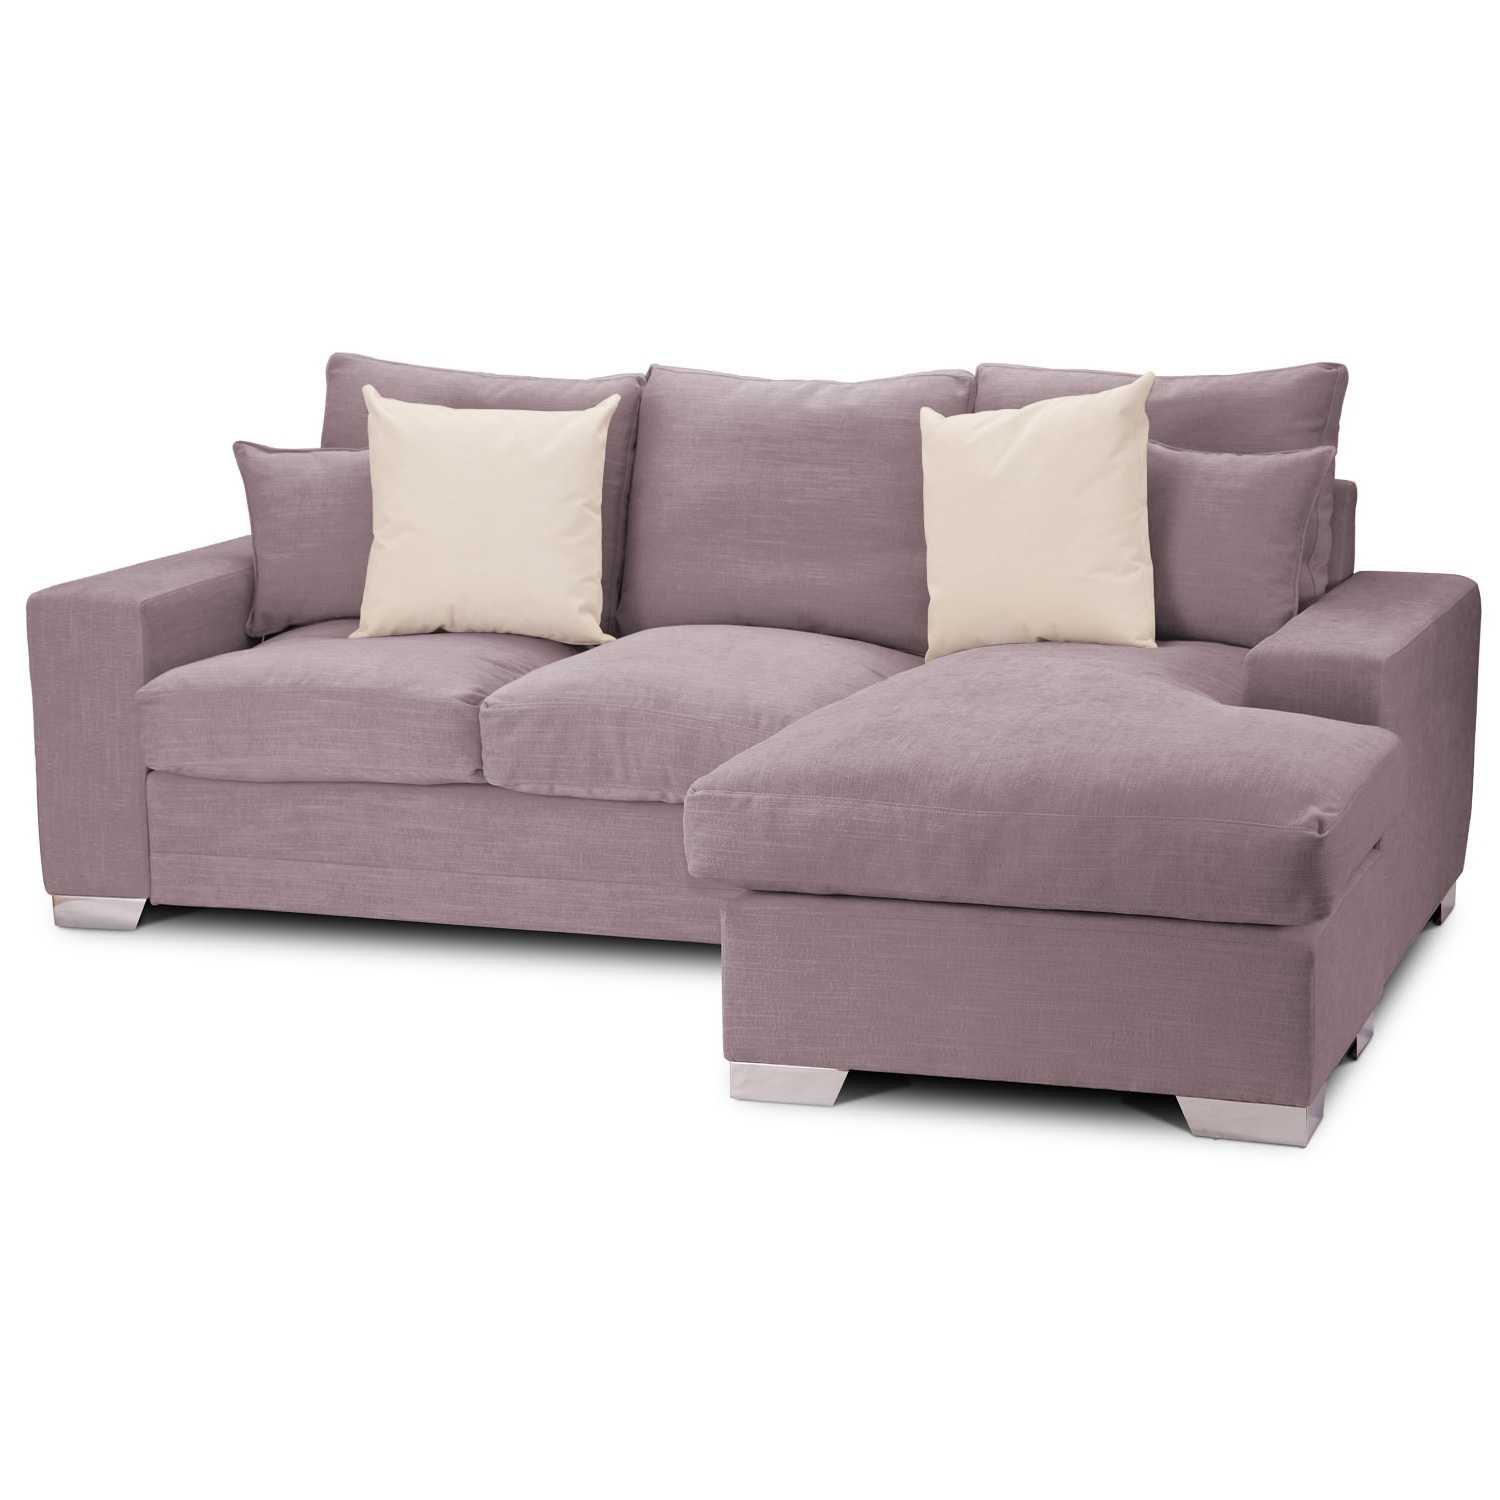 2017 Ashley Furniture Sofa Bed Sofa Bed Target Mainstays Sofa Sleeper Regarding Sofabeds With Chaise (View 1 of 15)